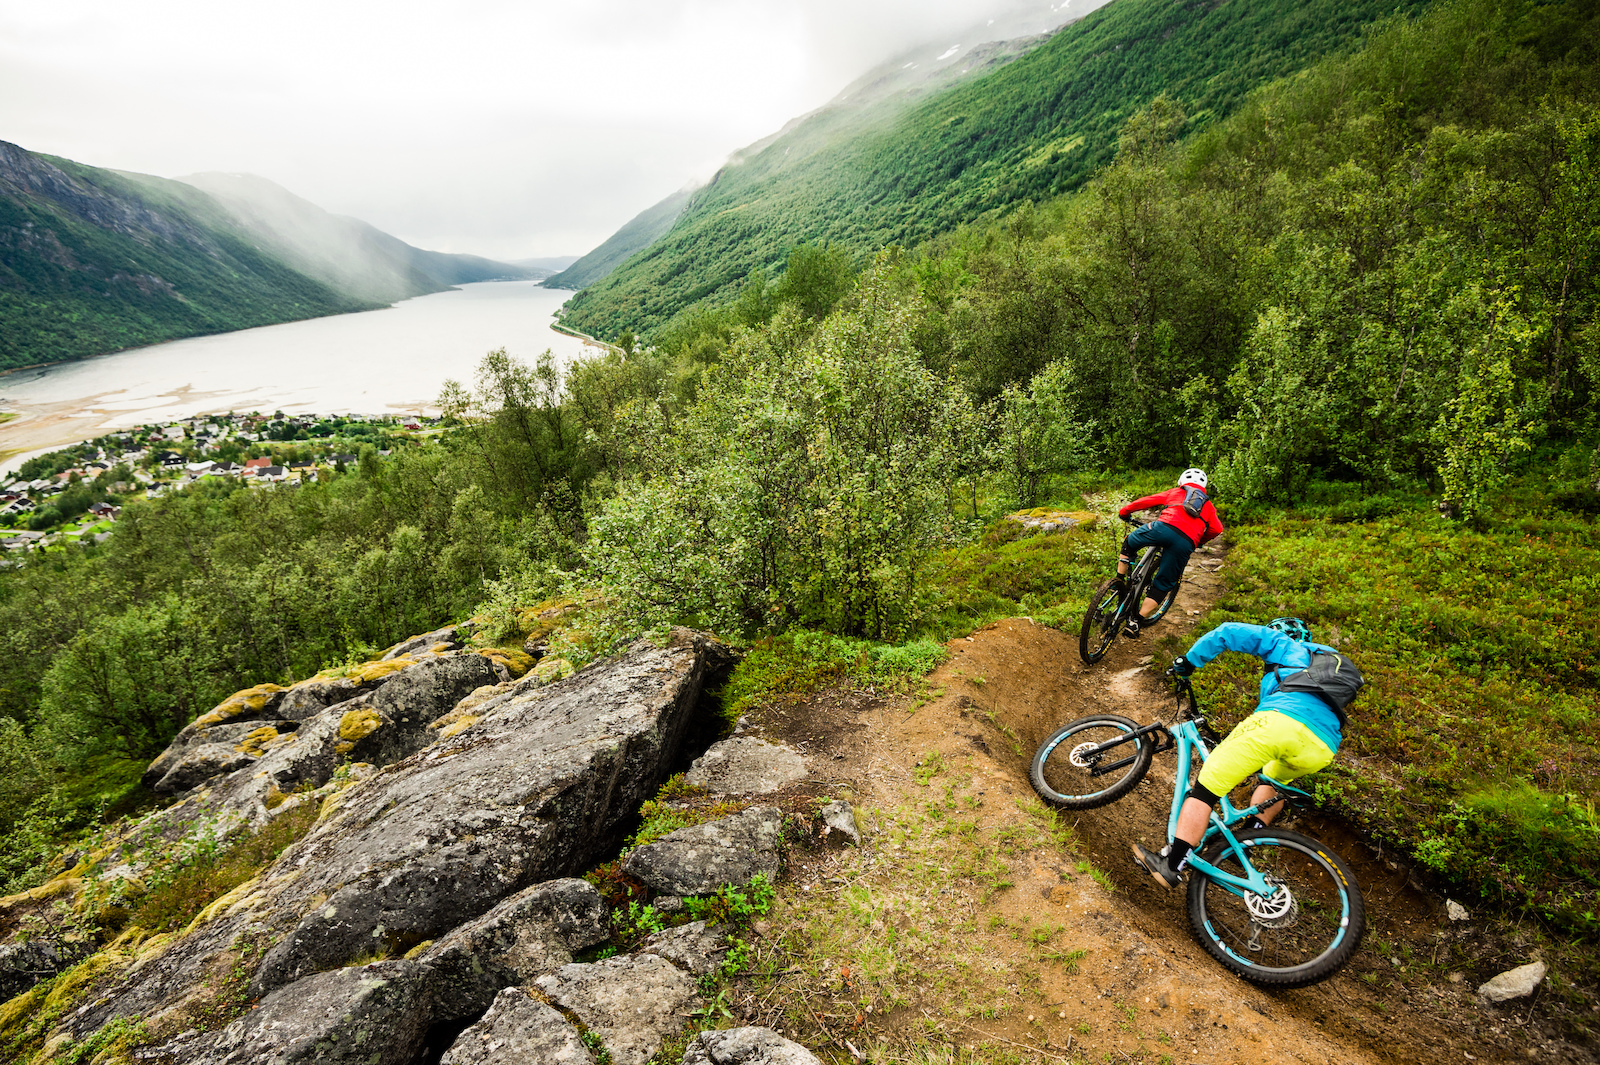 Mikael af Ekenstam and Joey Schulser mountain biking in Beisfjord Norway.